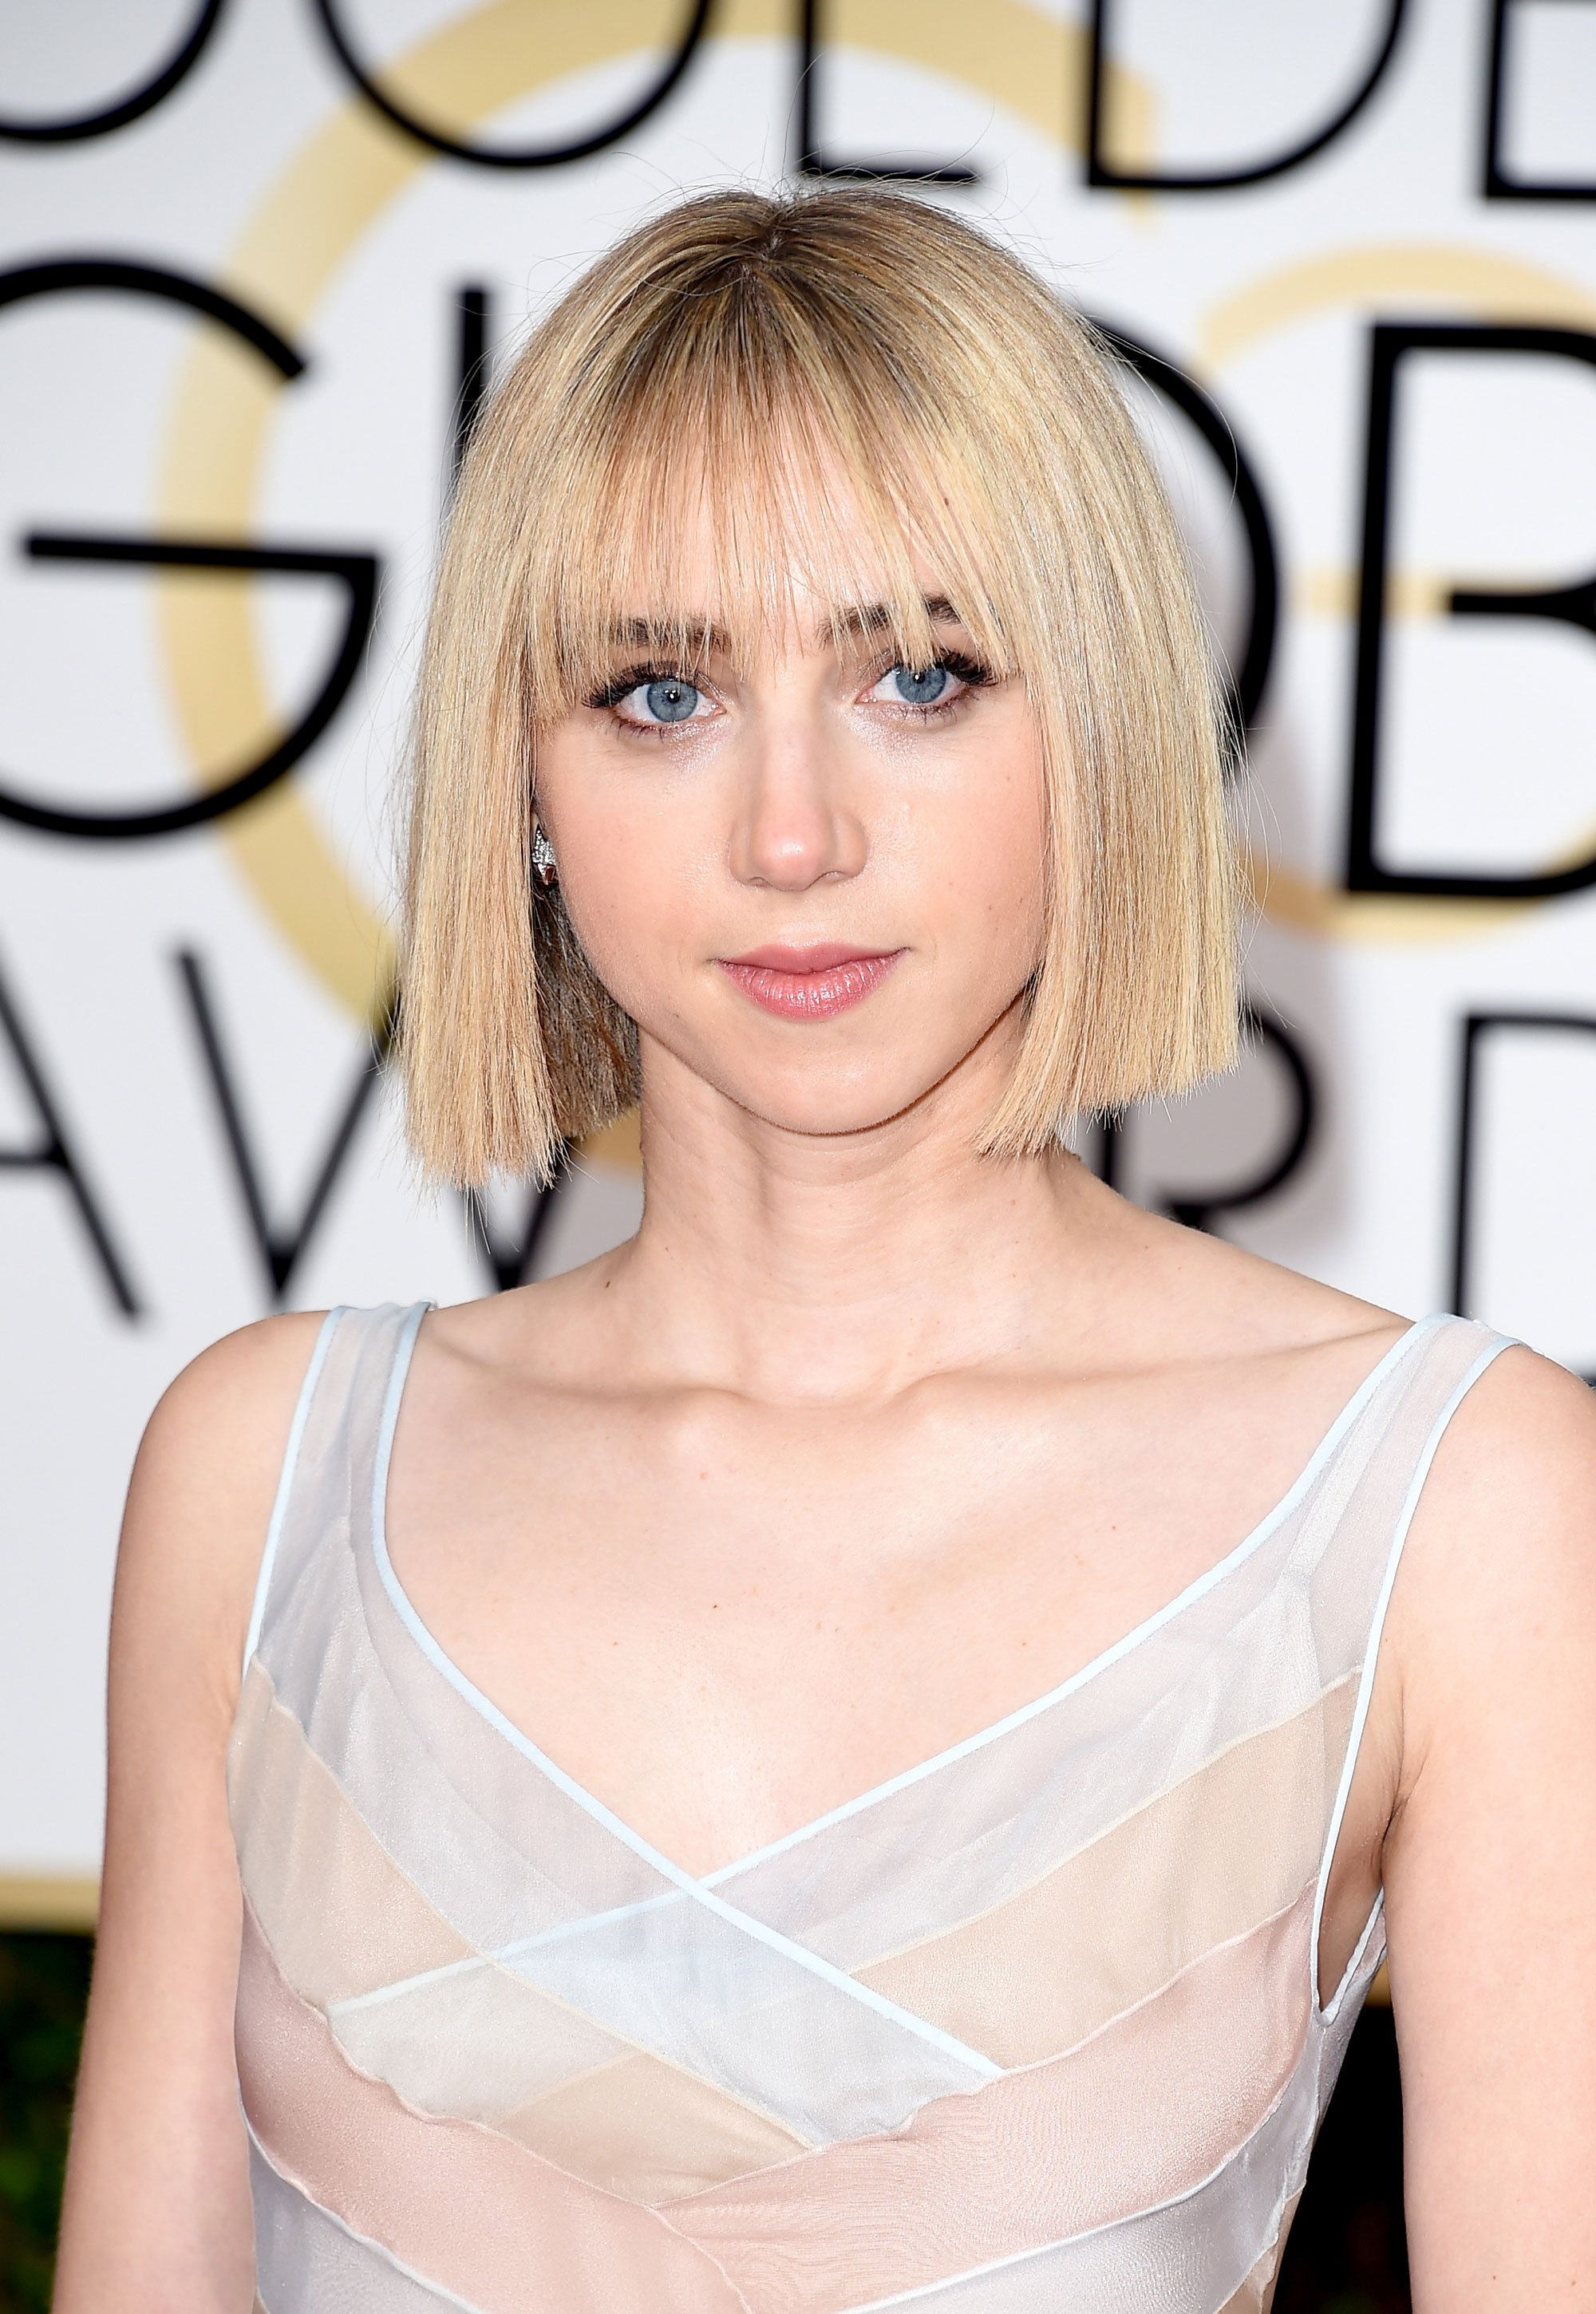 Awesome Bob Hairstyles From Golden Globes 2016 2017 Haircuts Hairstyles And Hair Colors